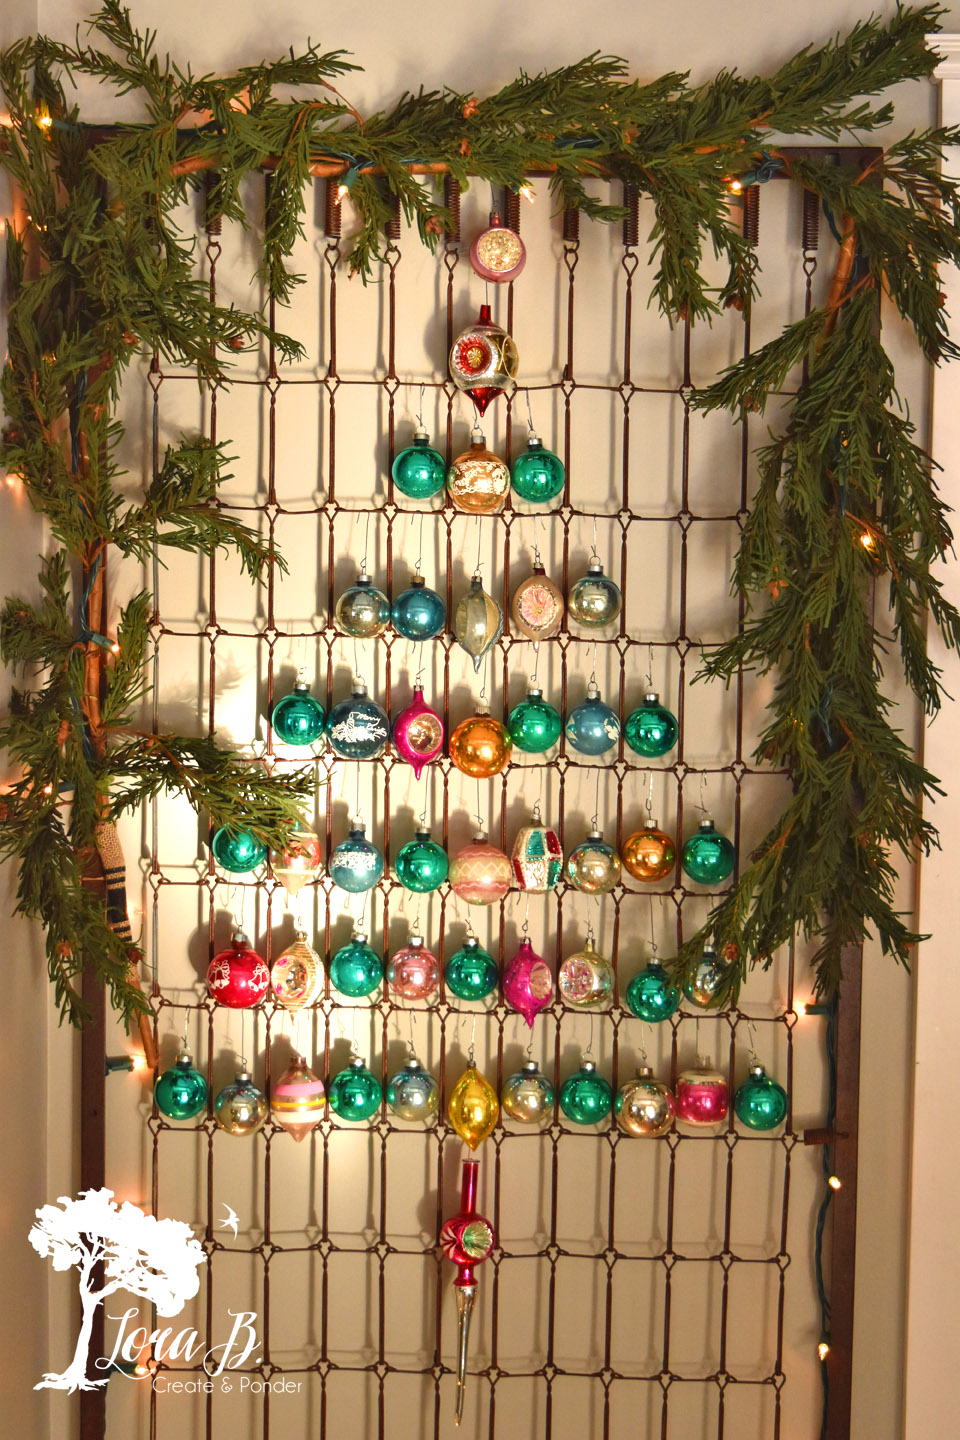 Shiny Brite Decorating Ideas - the most creative ideas for displaying Christmas ornaments like this ornament tree hung on an old bedspring kellyelko.com #vintagechristmas #christmasornaments #christmaswreath #christmasdecor #christmasdecorating #shinybrites #vintageornaments #ornaments #christmastree